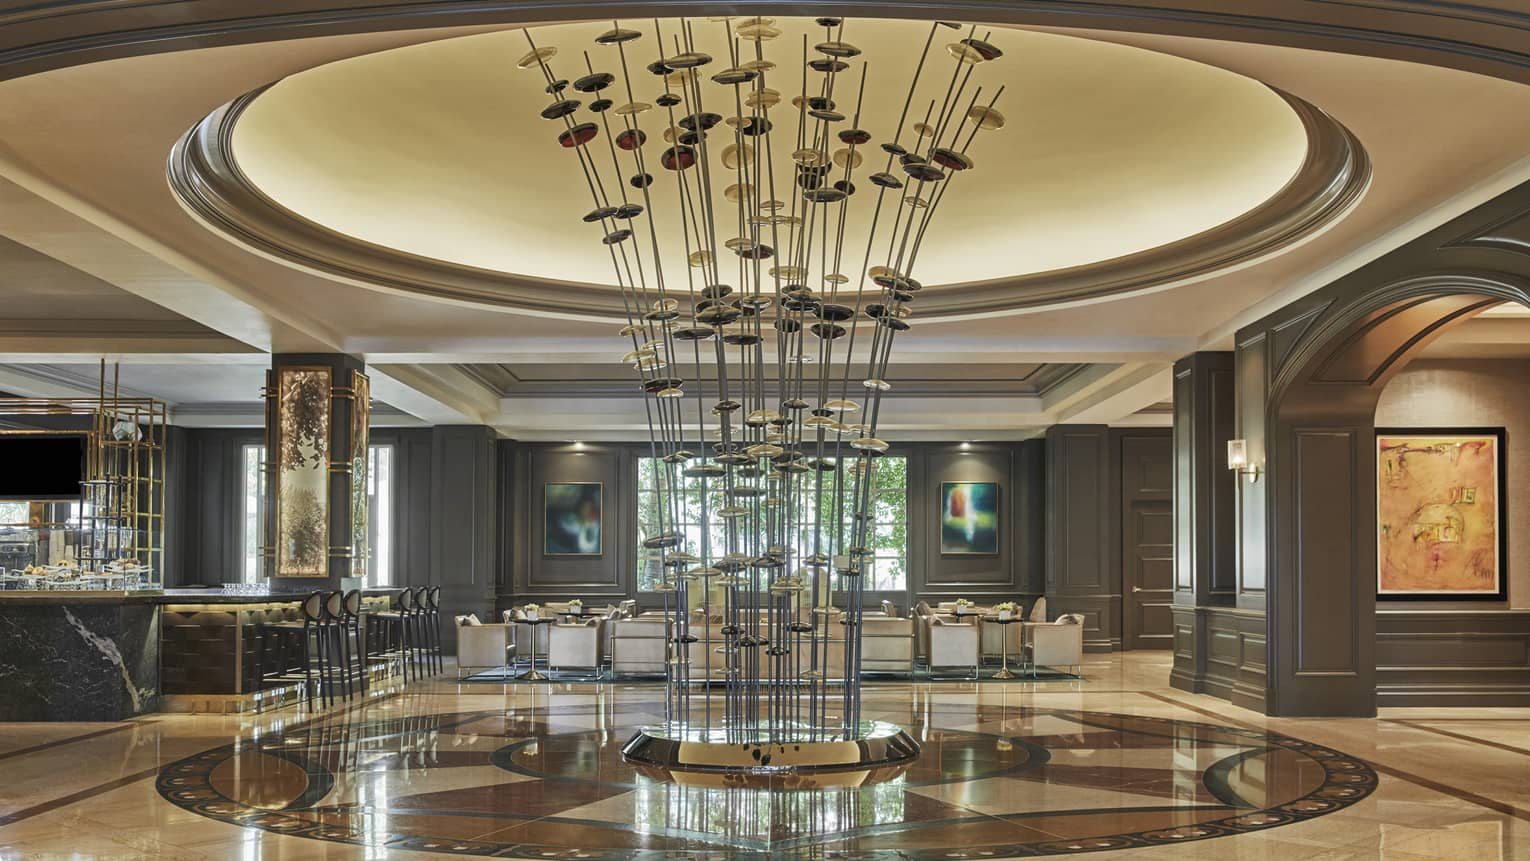 A tall sculpture with long metal extensions sits at the center of a marble lobby